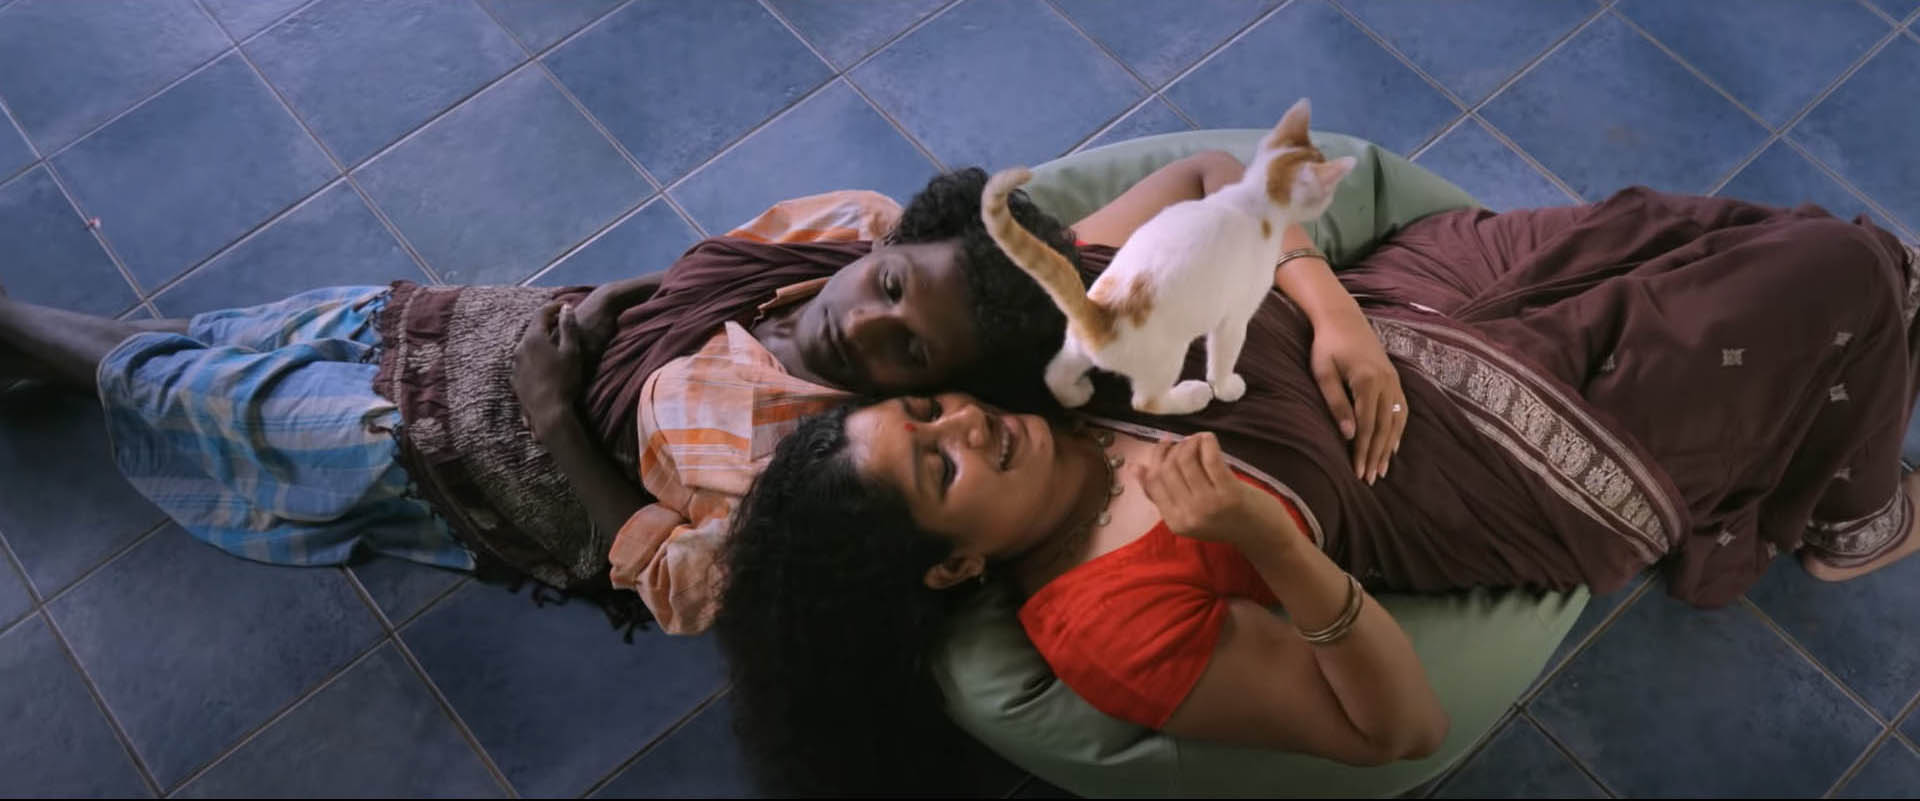 Top-angle shot of Gulikan and Dancer--two characters form the film--lying on a beanbag with their heads next to each other, stretched out in opposite directions, with a cat standing on the Dancer's chest